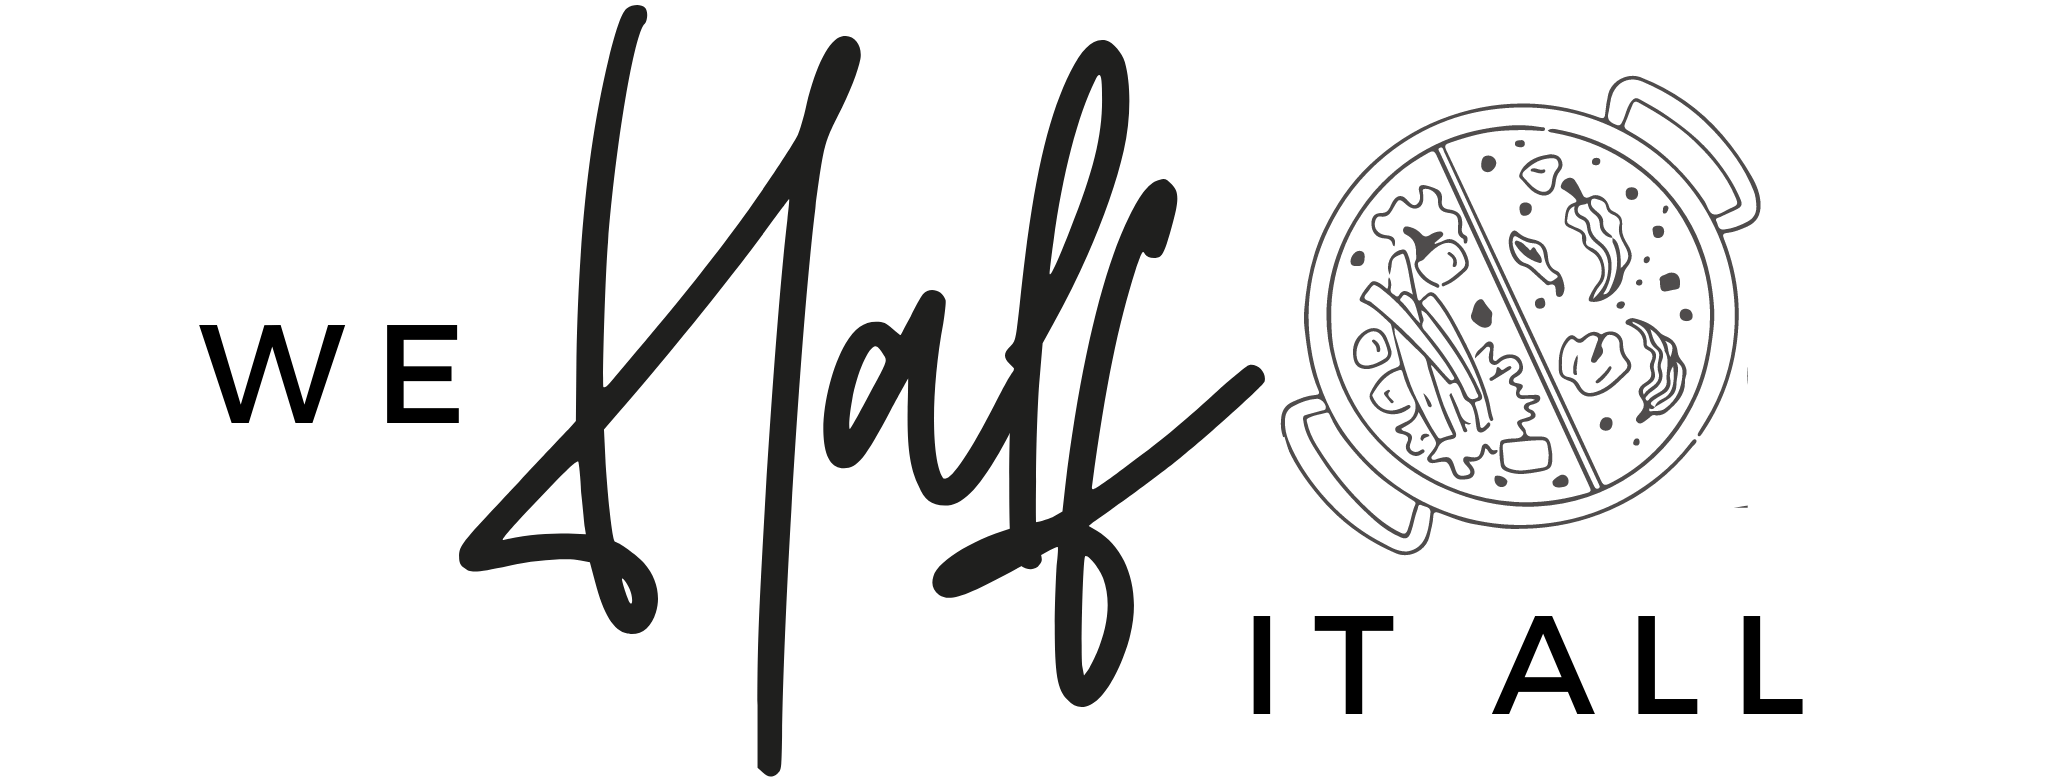 We Half It All - Hot Pot Logo